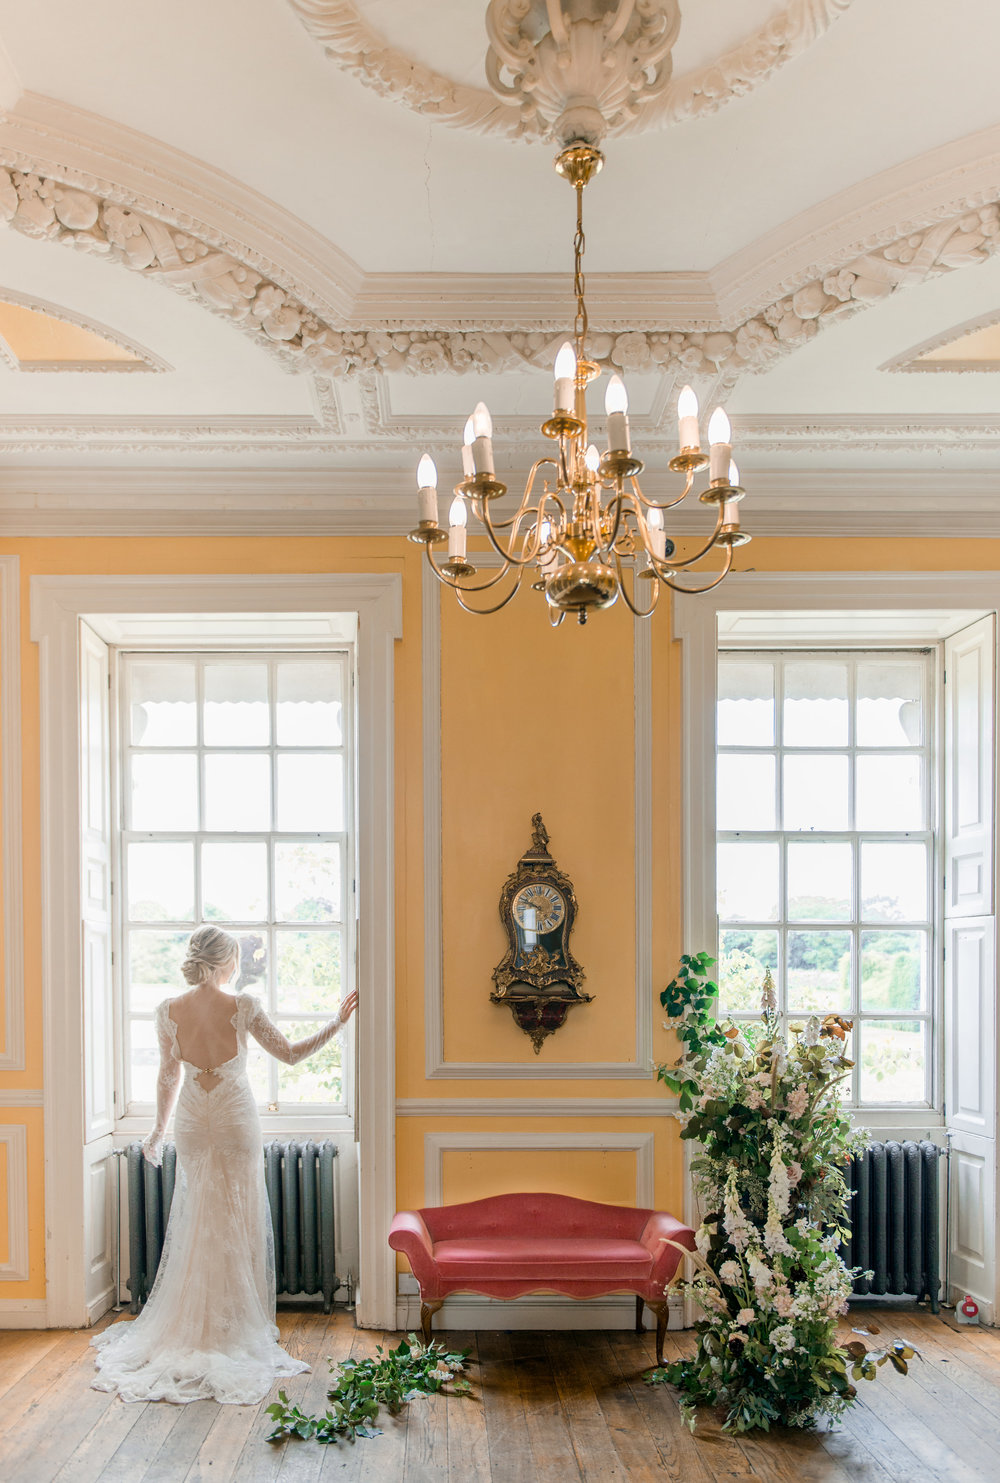 The Timeless Stylist-Elegant and Romantic Wedding Styling-Stately Home Wedding Venue Editorial Shoot